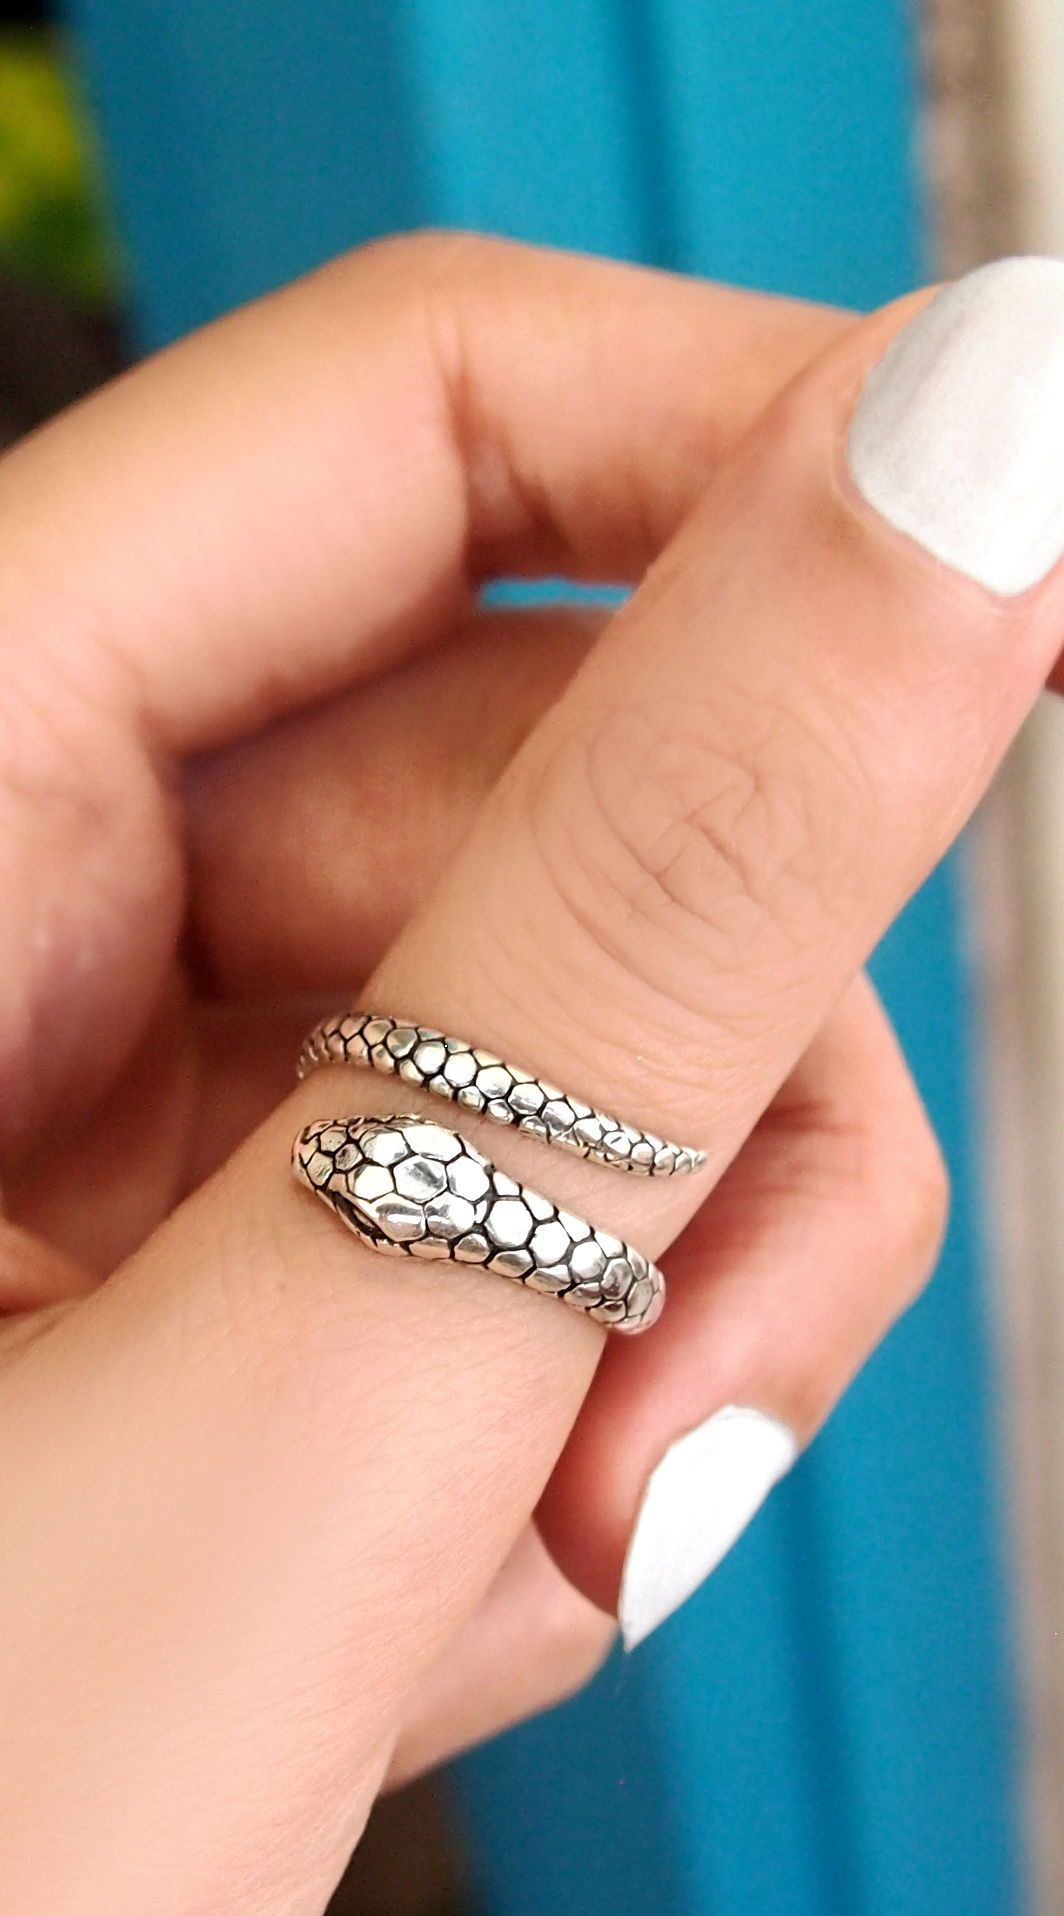 Snake ring, sterling silver rings for women, boho rings, bohemian jewelry, handmade silver jewelry, wrap ring, adjustable rings, handmade simple rings, best jewelry brands, Statement rings, Best jewelry, hippie style jewelry, accessories rings, chunky stone ring #jewelryshops #boho #bohojewelry #bohomagic